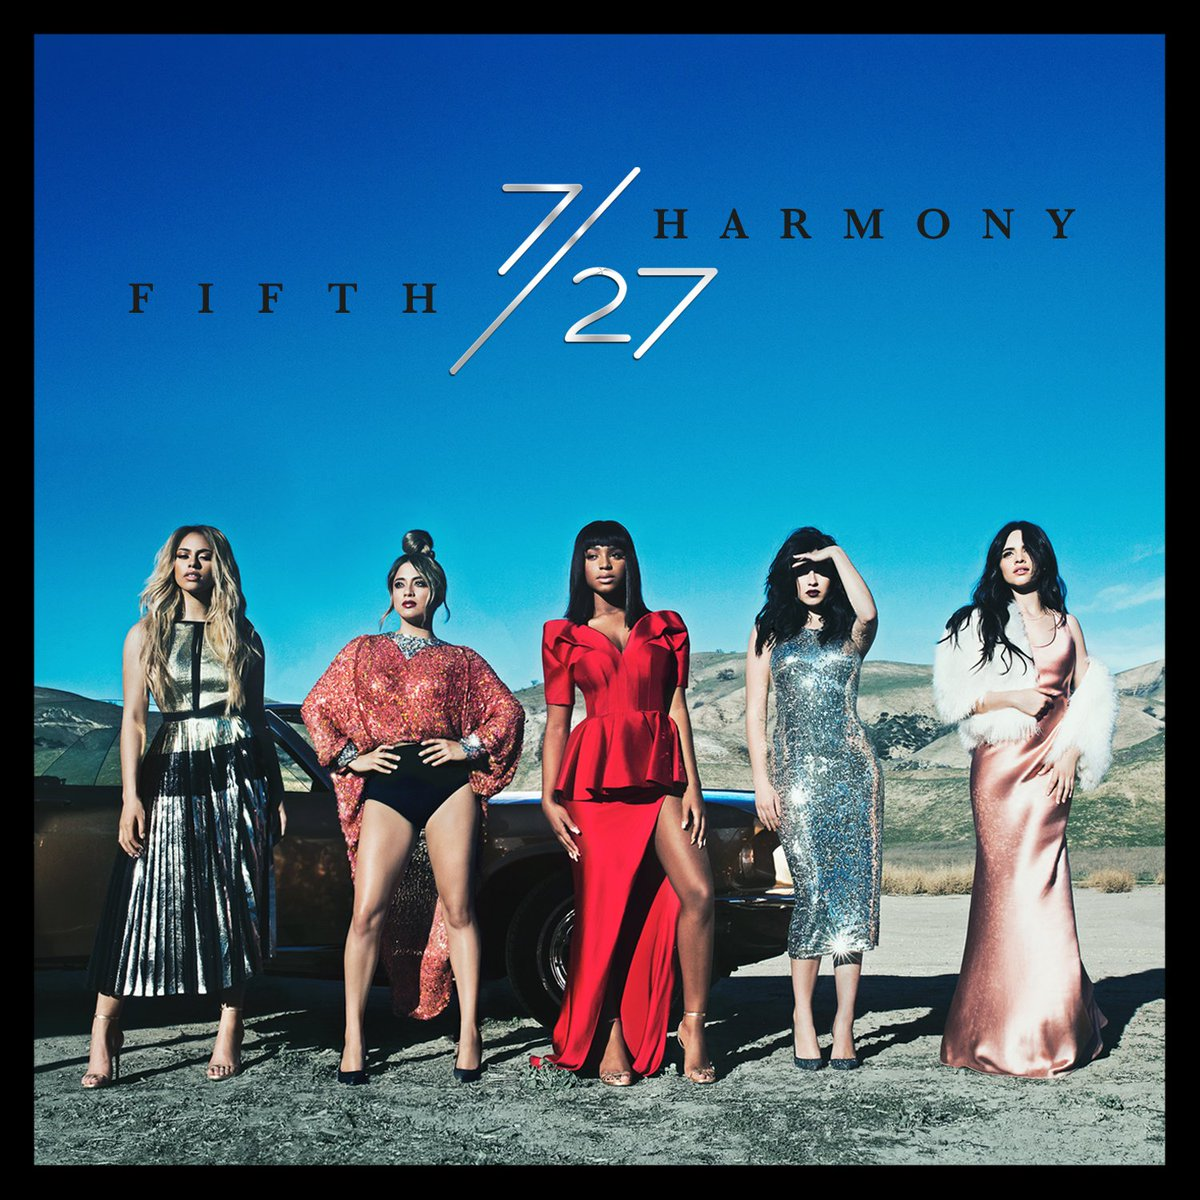 Who's ready for new @FifthHarmony music? @levineonscene & @1061BLI are! https://t.co/QwQpBT5sey